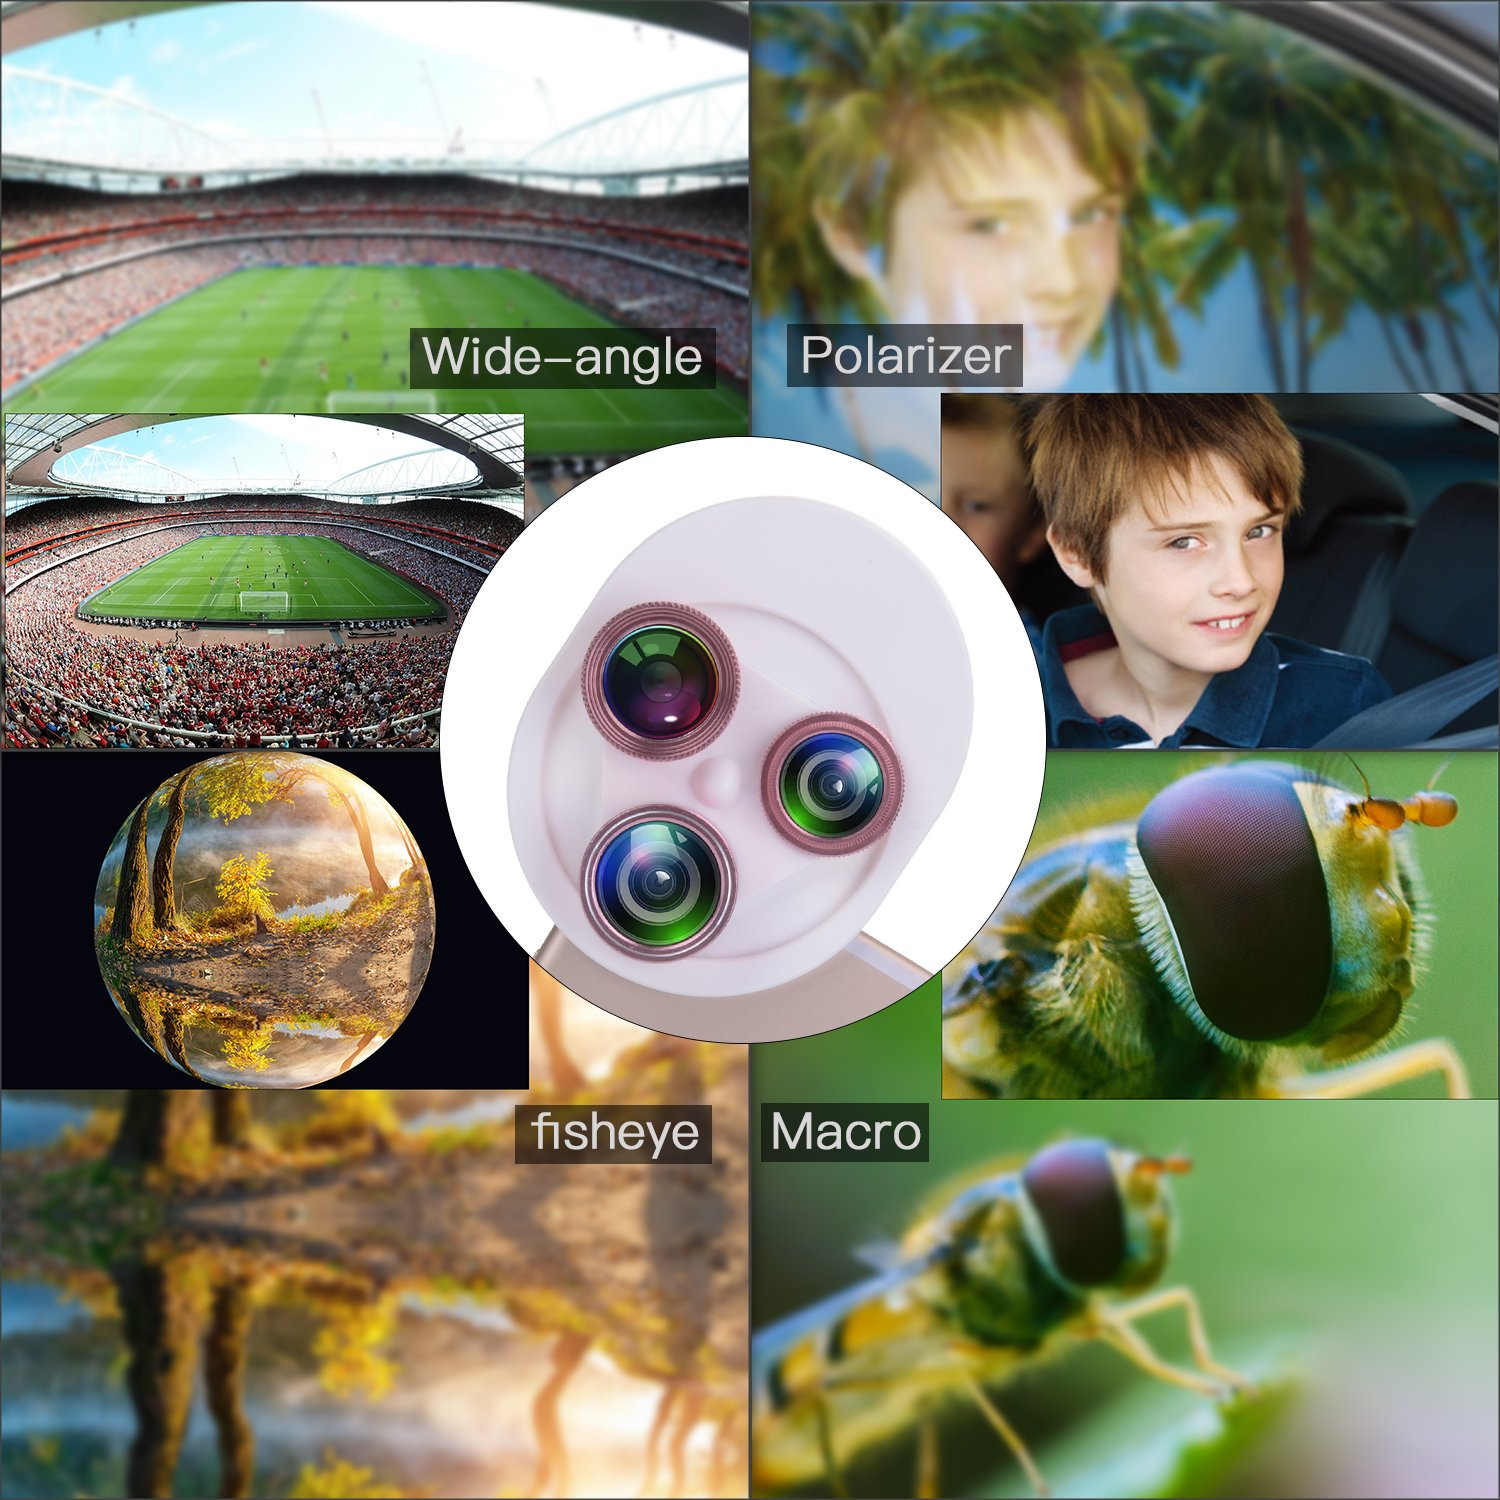 Cell Phone Camera Lens, YELIN 4 in 1 Phone Camera Lens, 198°Fisheye Lens 15X Macro Lens 0.63X Wide Angle Lens CPL Lens Universal Clip-on Camera Lens Kit for iPhone Samsung etc. (Pink & White)